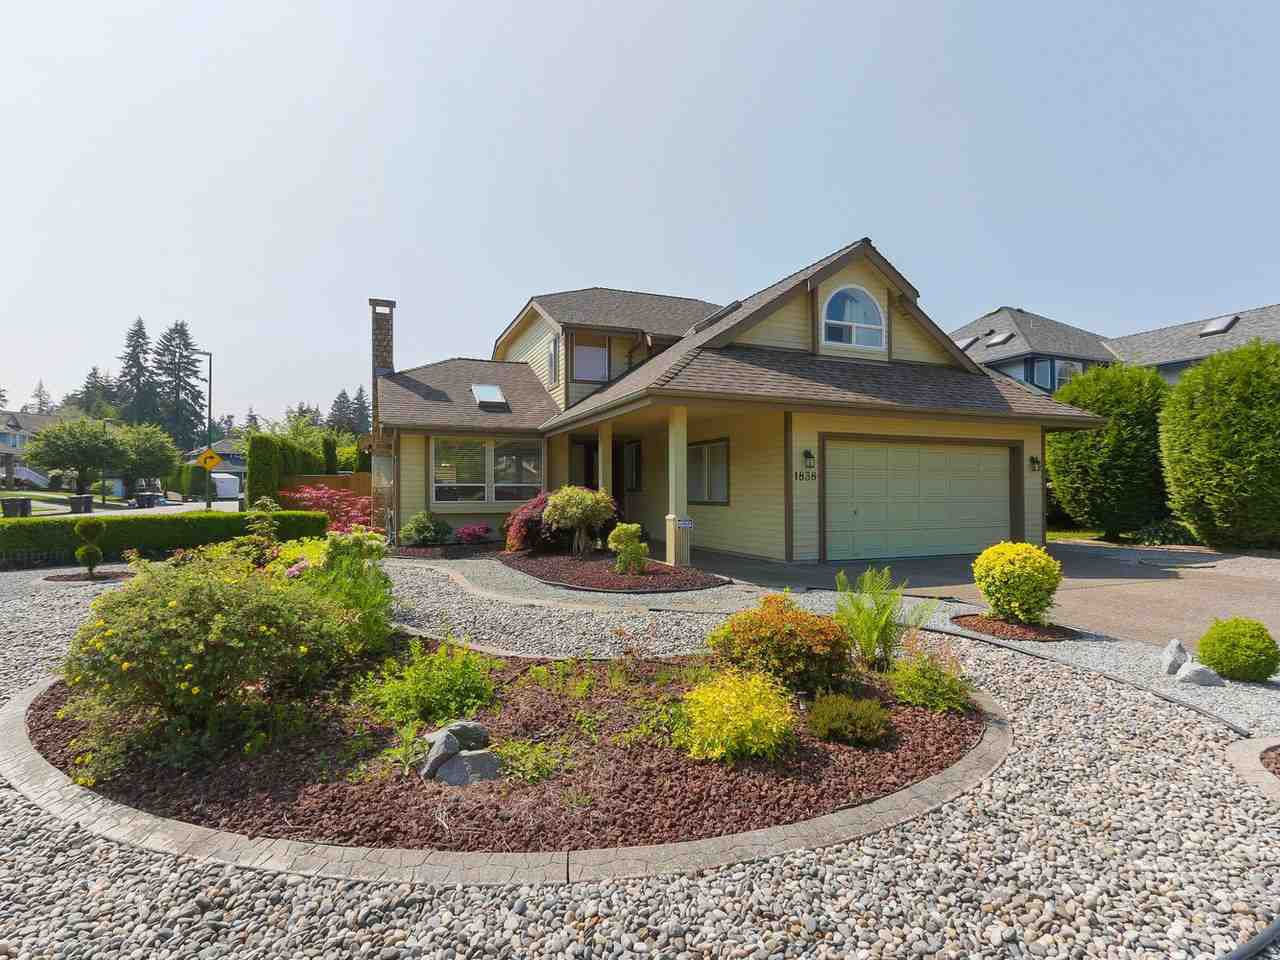 """Main Photo: 1838 WALNUT Crescent in Coquitlam: Central Coquitlam House for sale in """"Laurentian Heights"""" : MLS®# R2375199"""